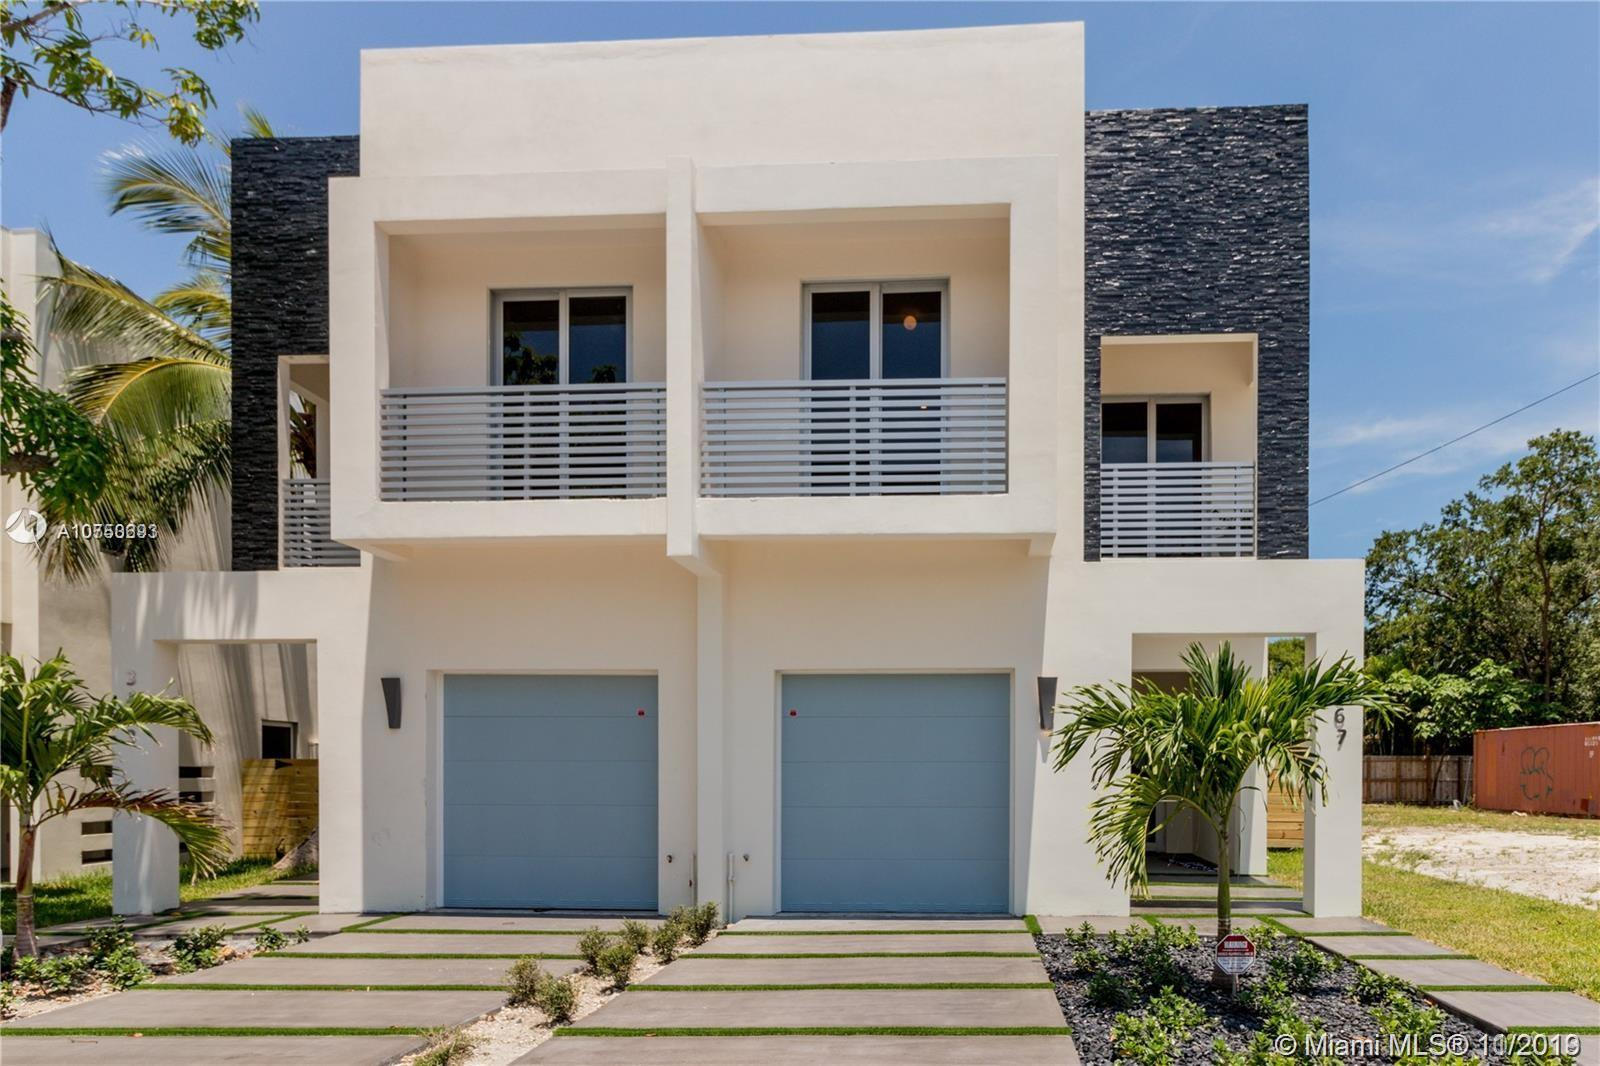 BEST PRICED TOWNHOME IN THE AREA!! Stunning 3 Bedrooms 2.5 Bathrooms New Construction Townhome in Coconut Grove, Beautiful Designer finishes, 24X48' Porcelain tiles Throughout, modern kitchen cabinets, granite countertops, high-end appliances, high ceilings & 8' solid wood custom doors with self-hiding hinges, modern plunge pool, impact windows and doors, finished closets, rollup blinds included. AMAZING LOCATION walking distance from the Coconut Grove Metrorail station and less than 10 minutes driving from UM, near world-class shopping, restaurants, hospital & great schools.